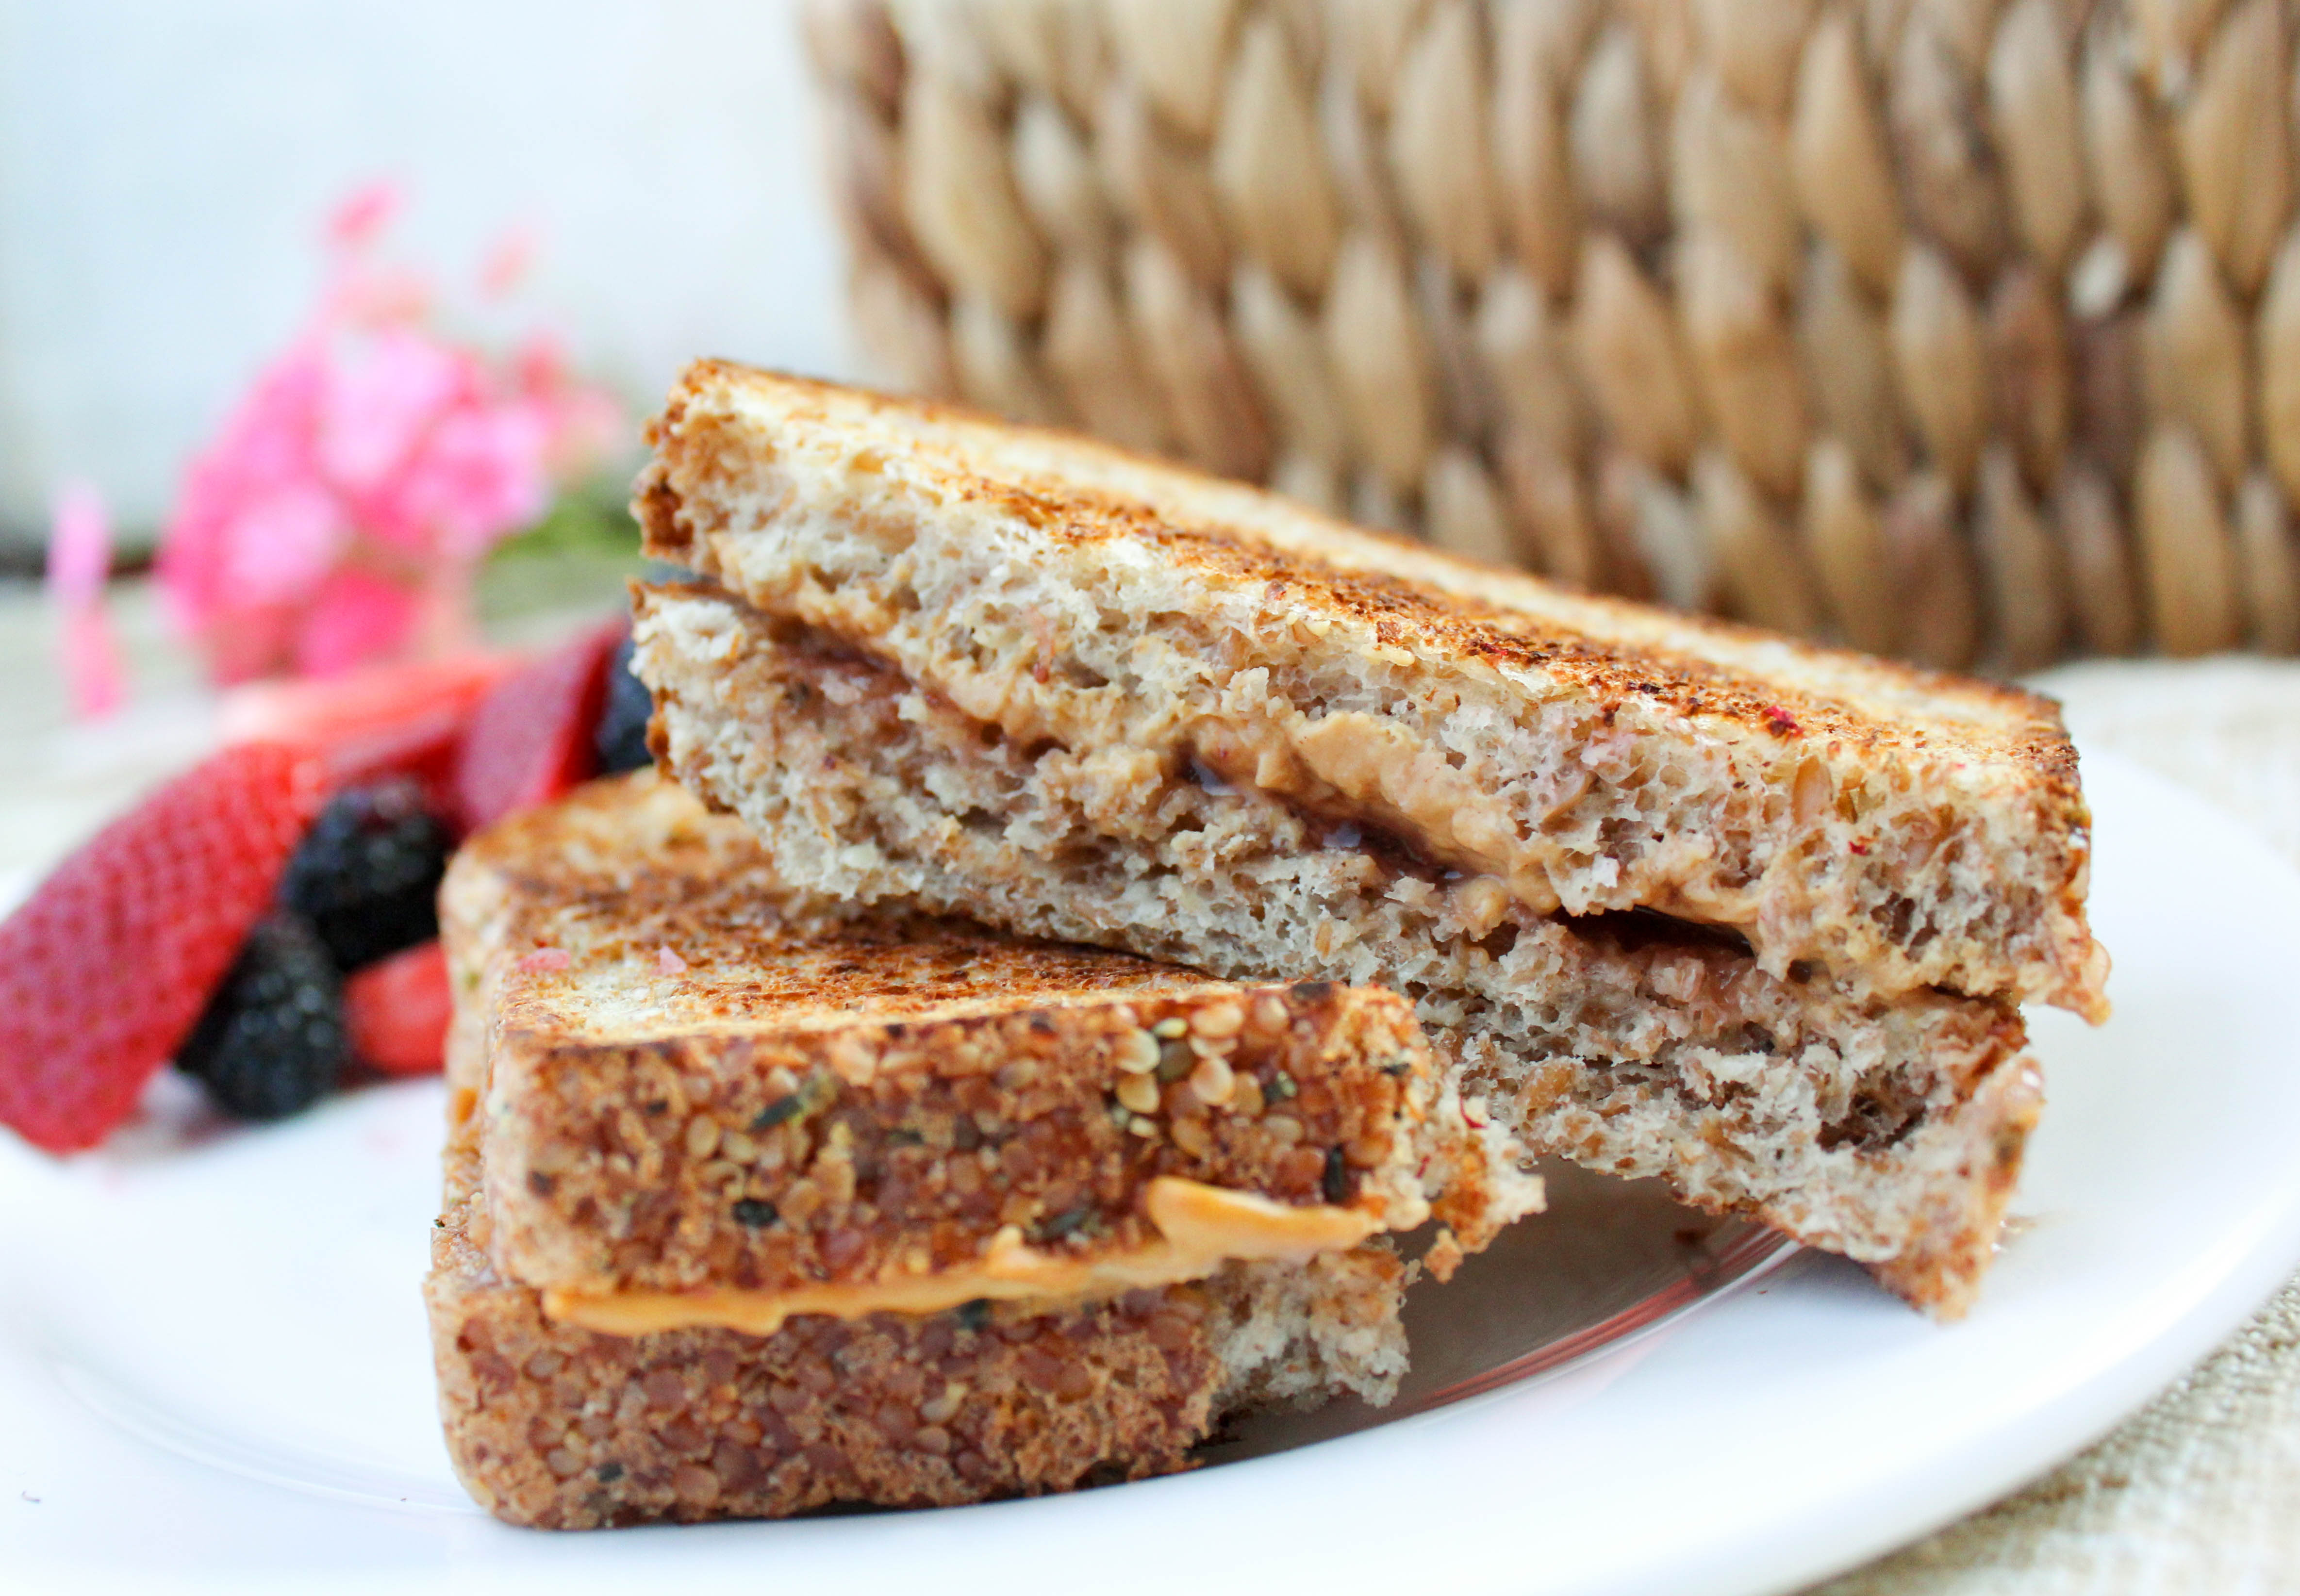 Easy Lunch Ideas - Grilled Peanut Butter & Jelly Sandwich (THM, Low Carb) #trimhealthymama #thmlunch #quicklunch #easylunchideas